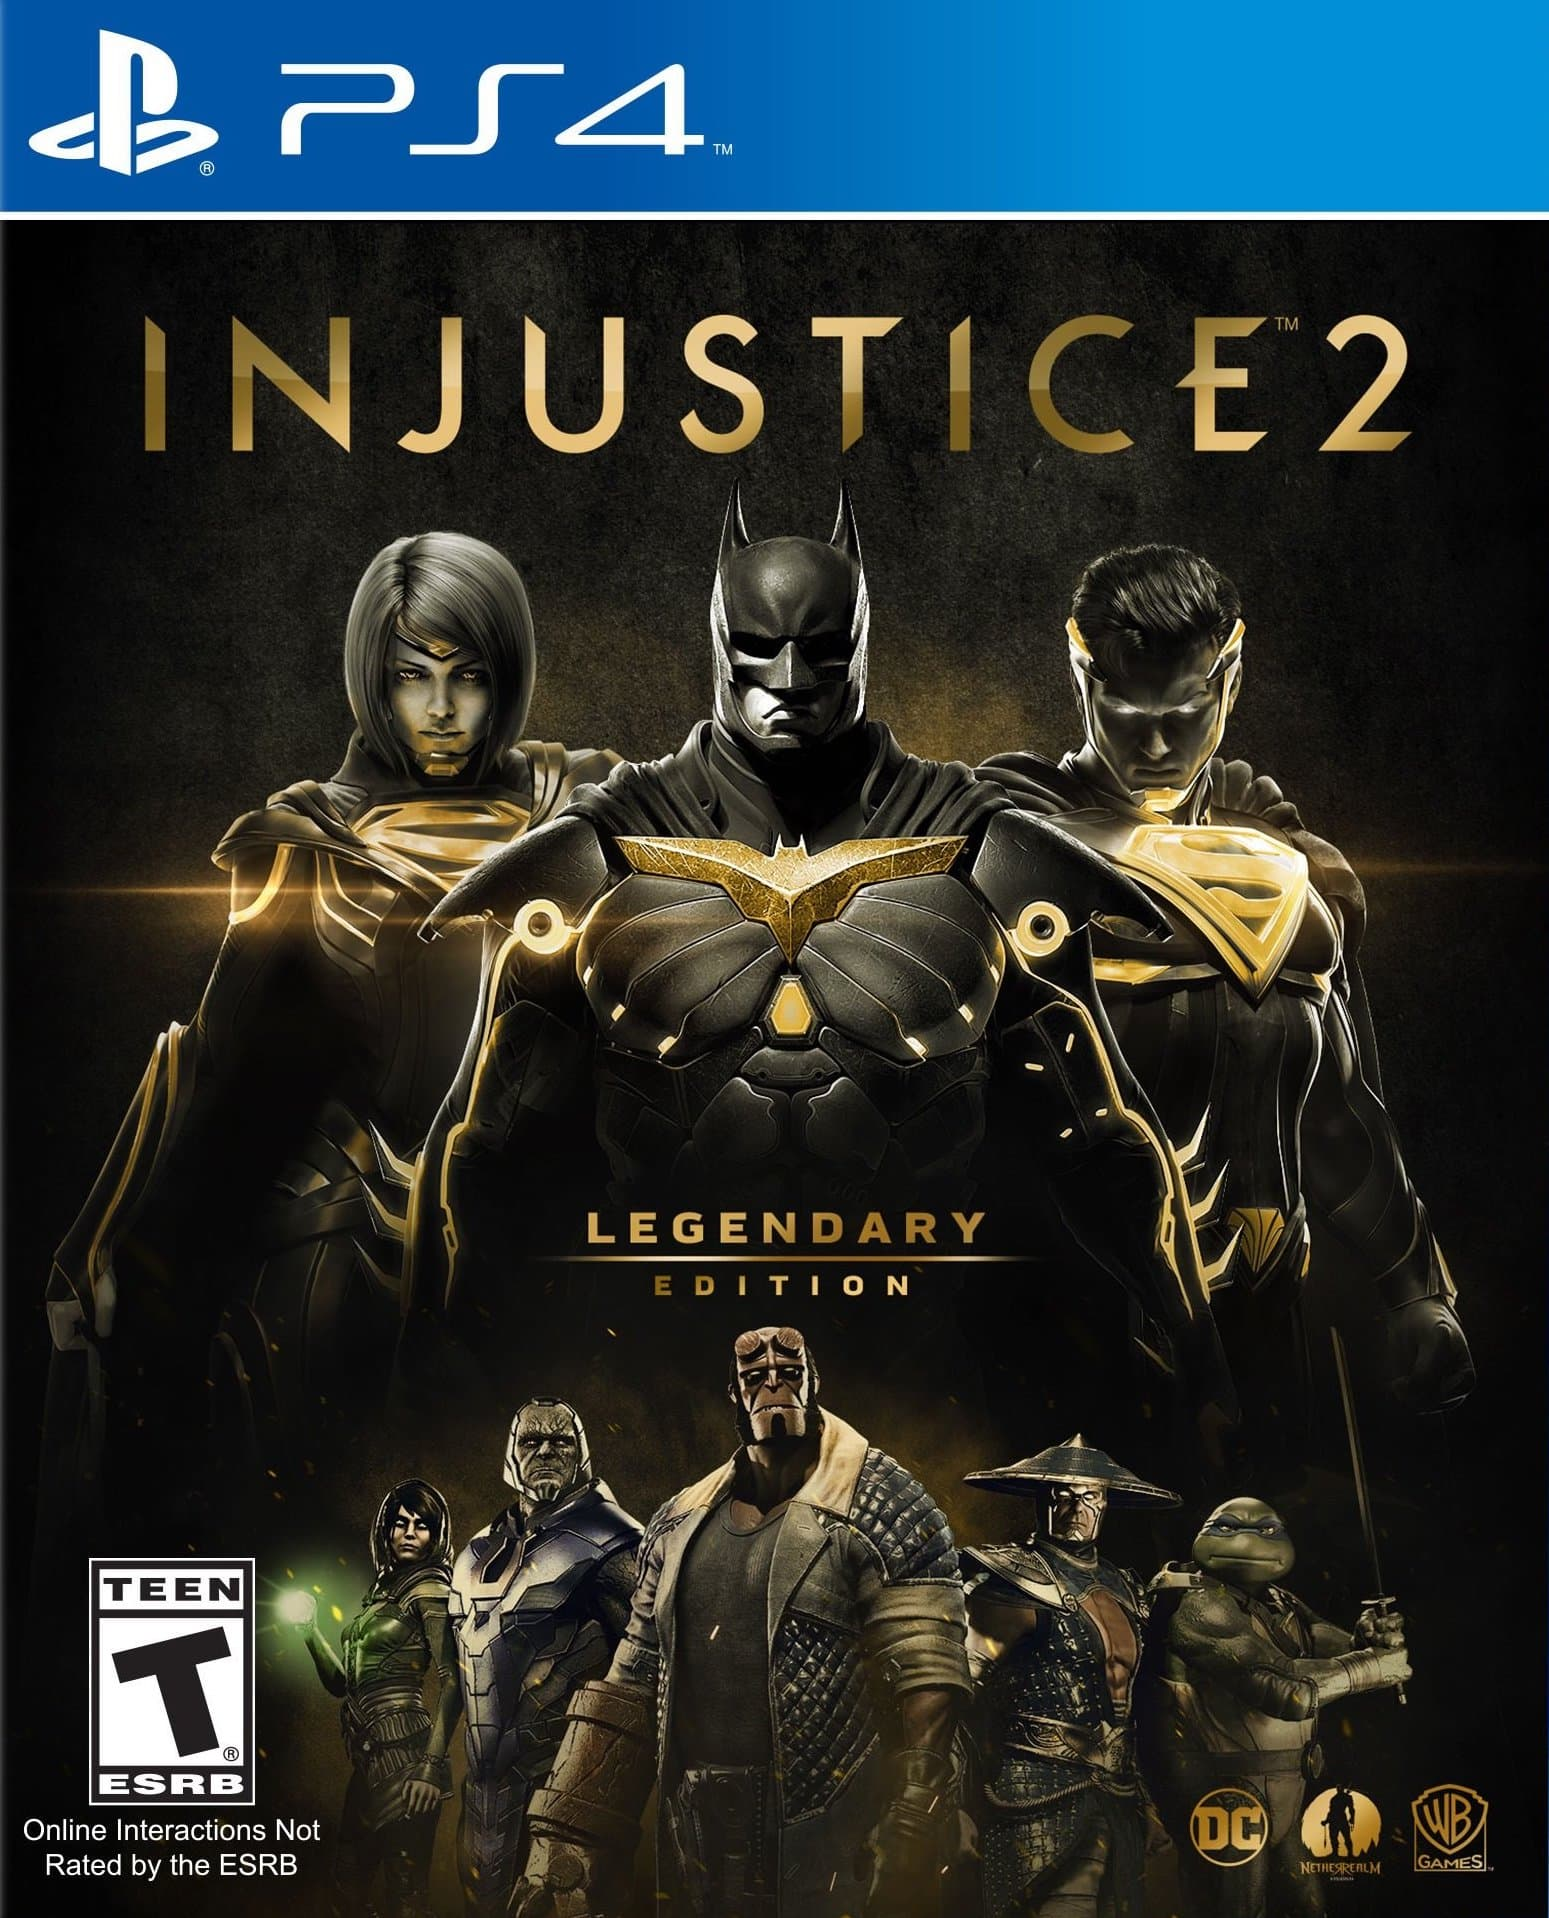 Injustice 2 Legendary Edition [PS4] 5.05 / 6.72 [USA] (2017) [Русский/Английский] (v1.00)